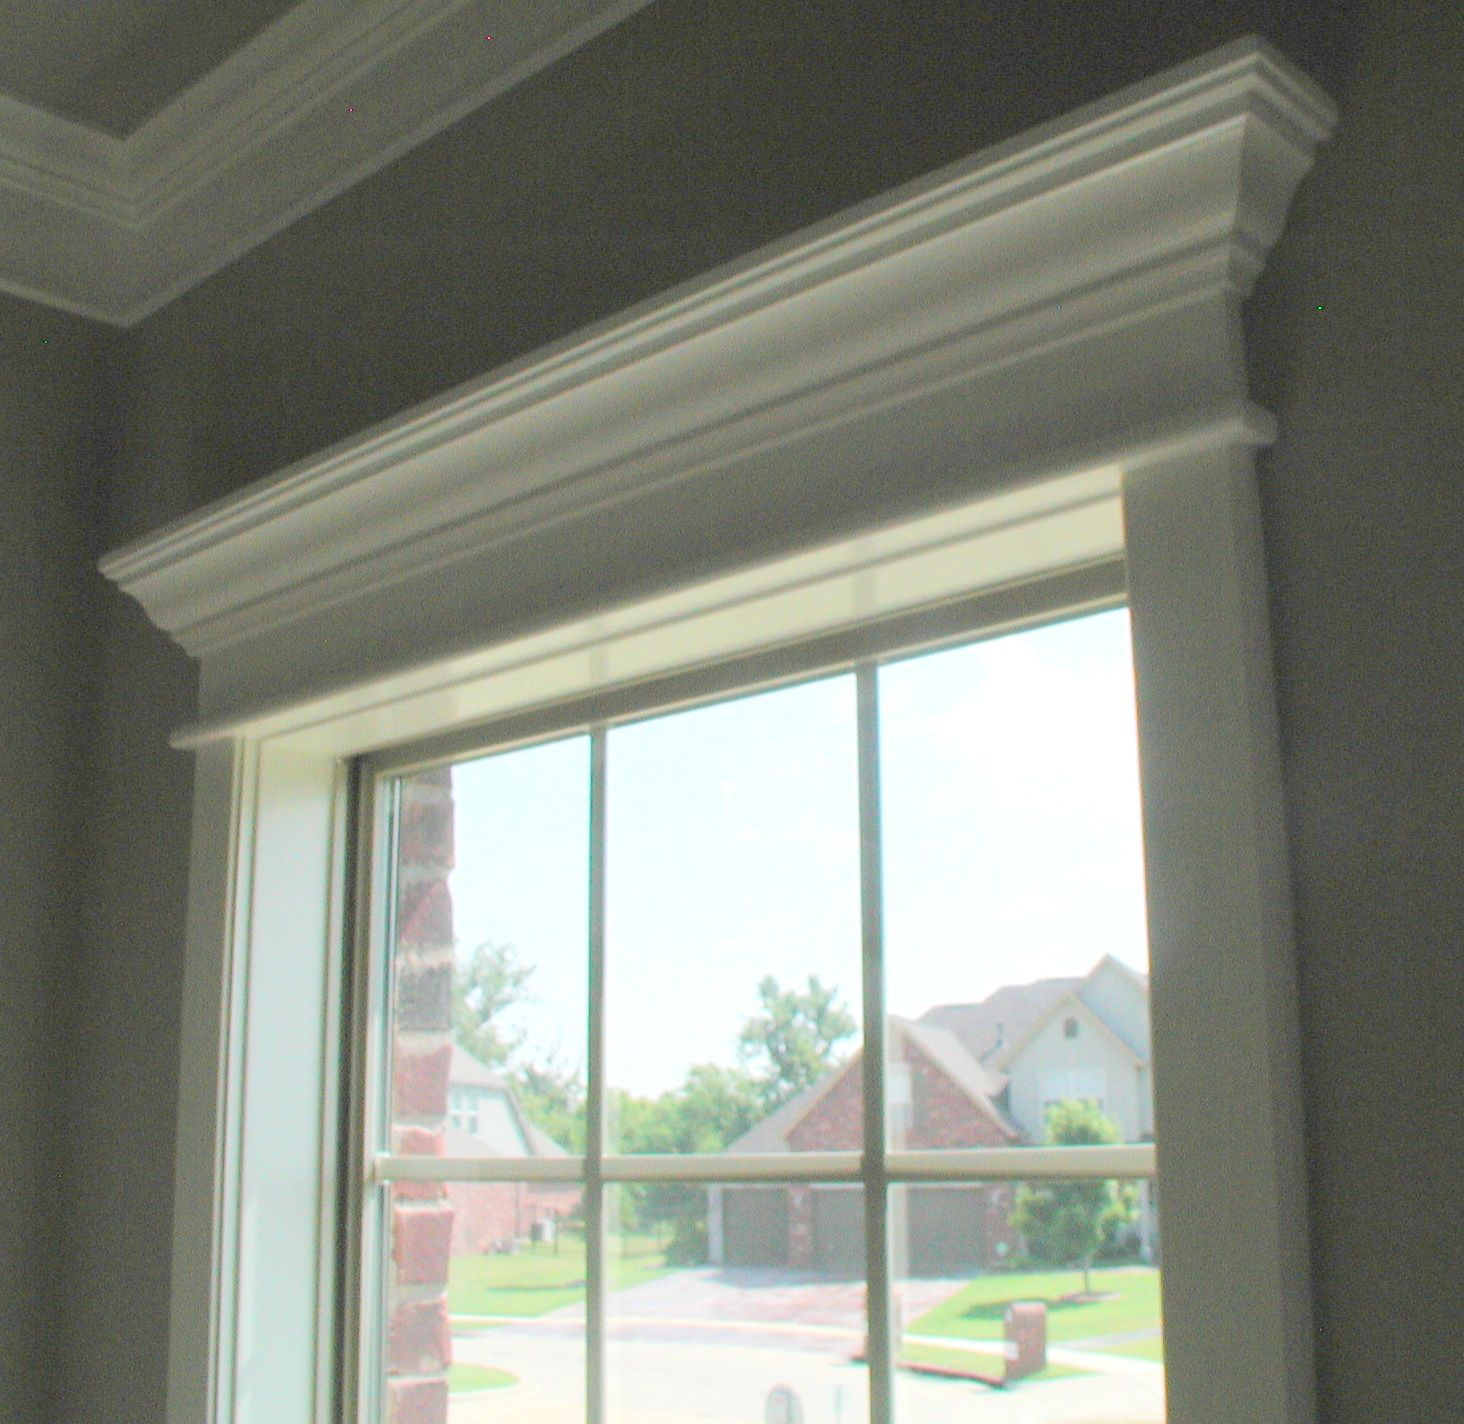 Doorway and window molding window room and window moldings for Over door decorative molding